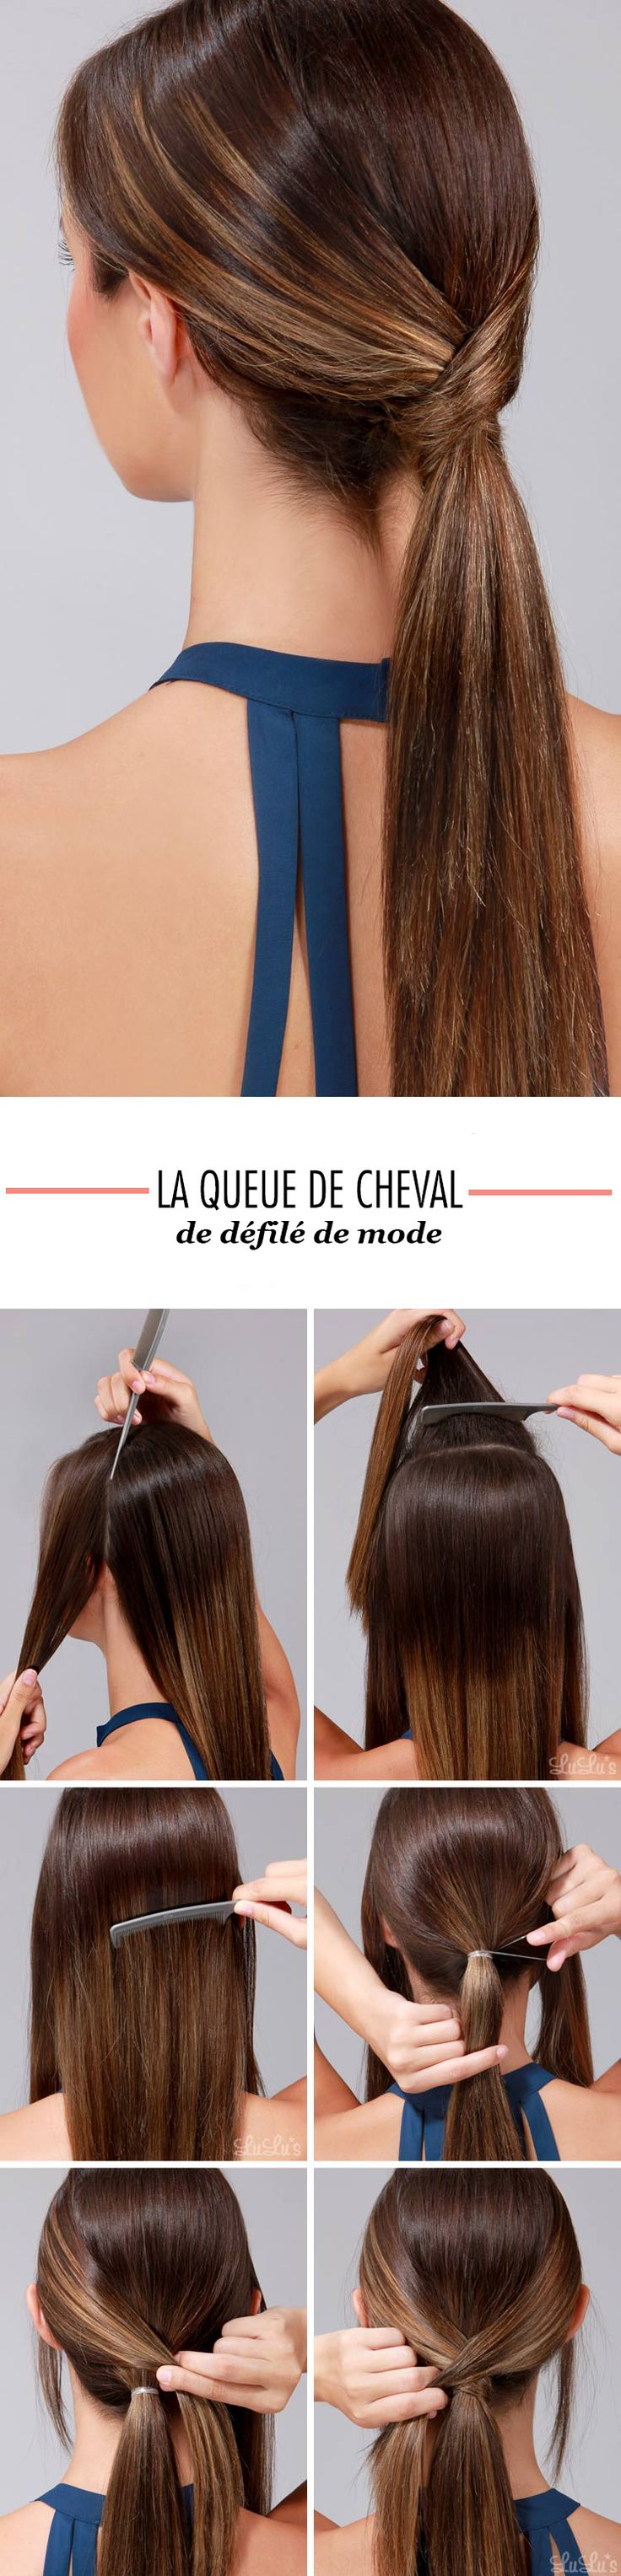 #Tutoriel pour réaliser la queue-de-cheval made in podium ! #cooiffures